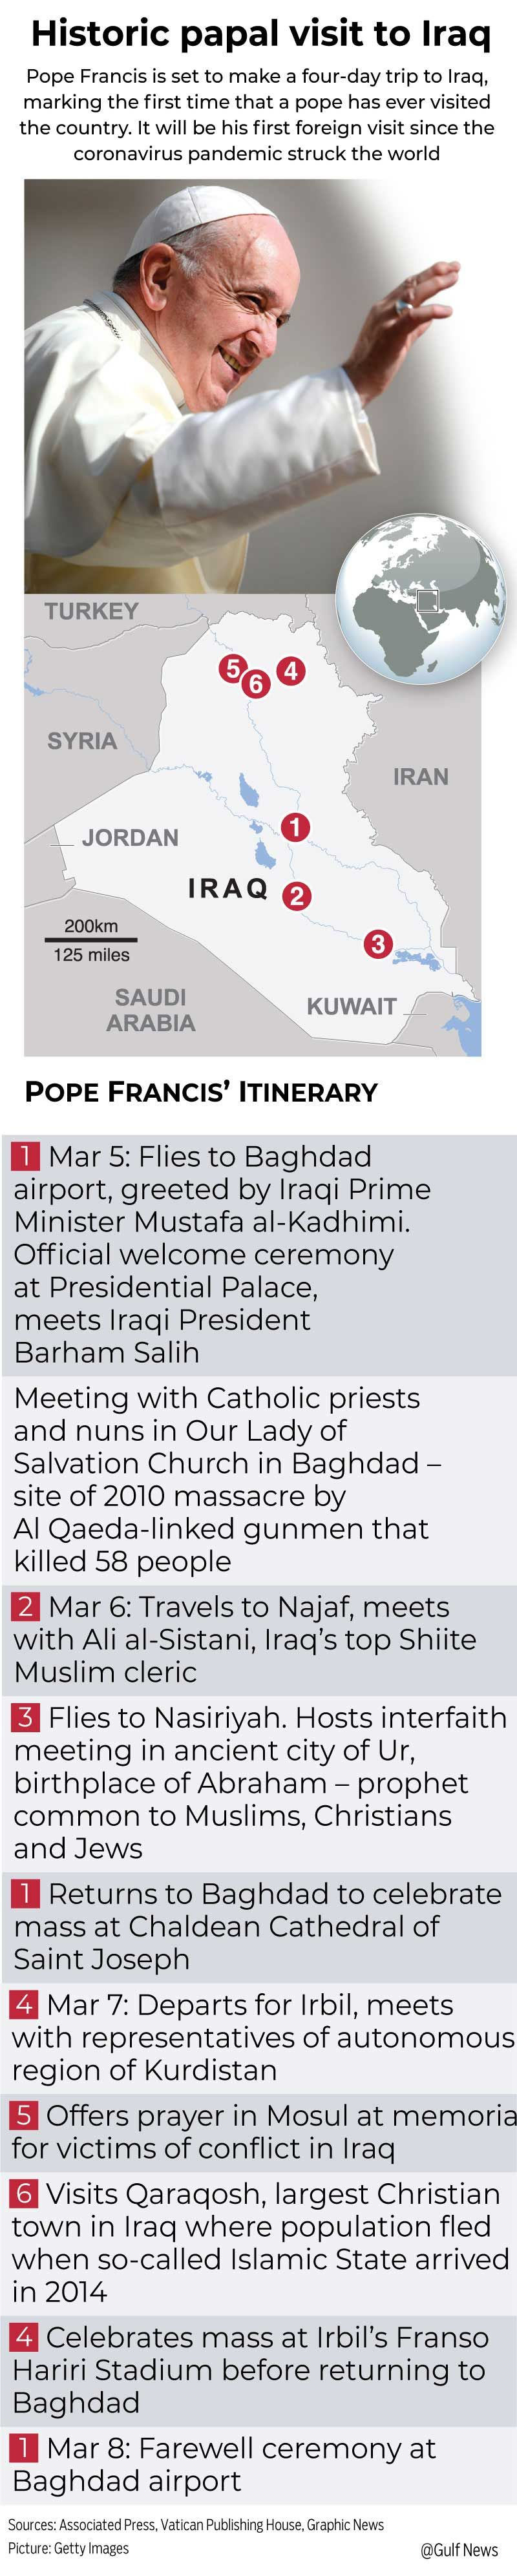 20210225 pope francis infographic